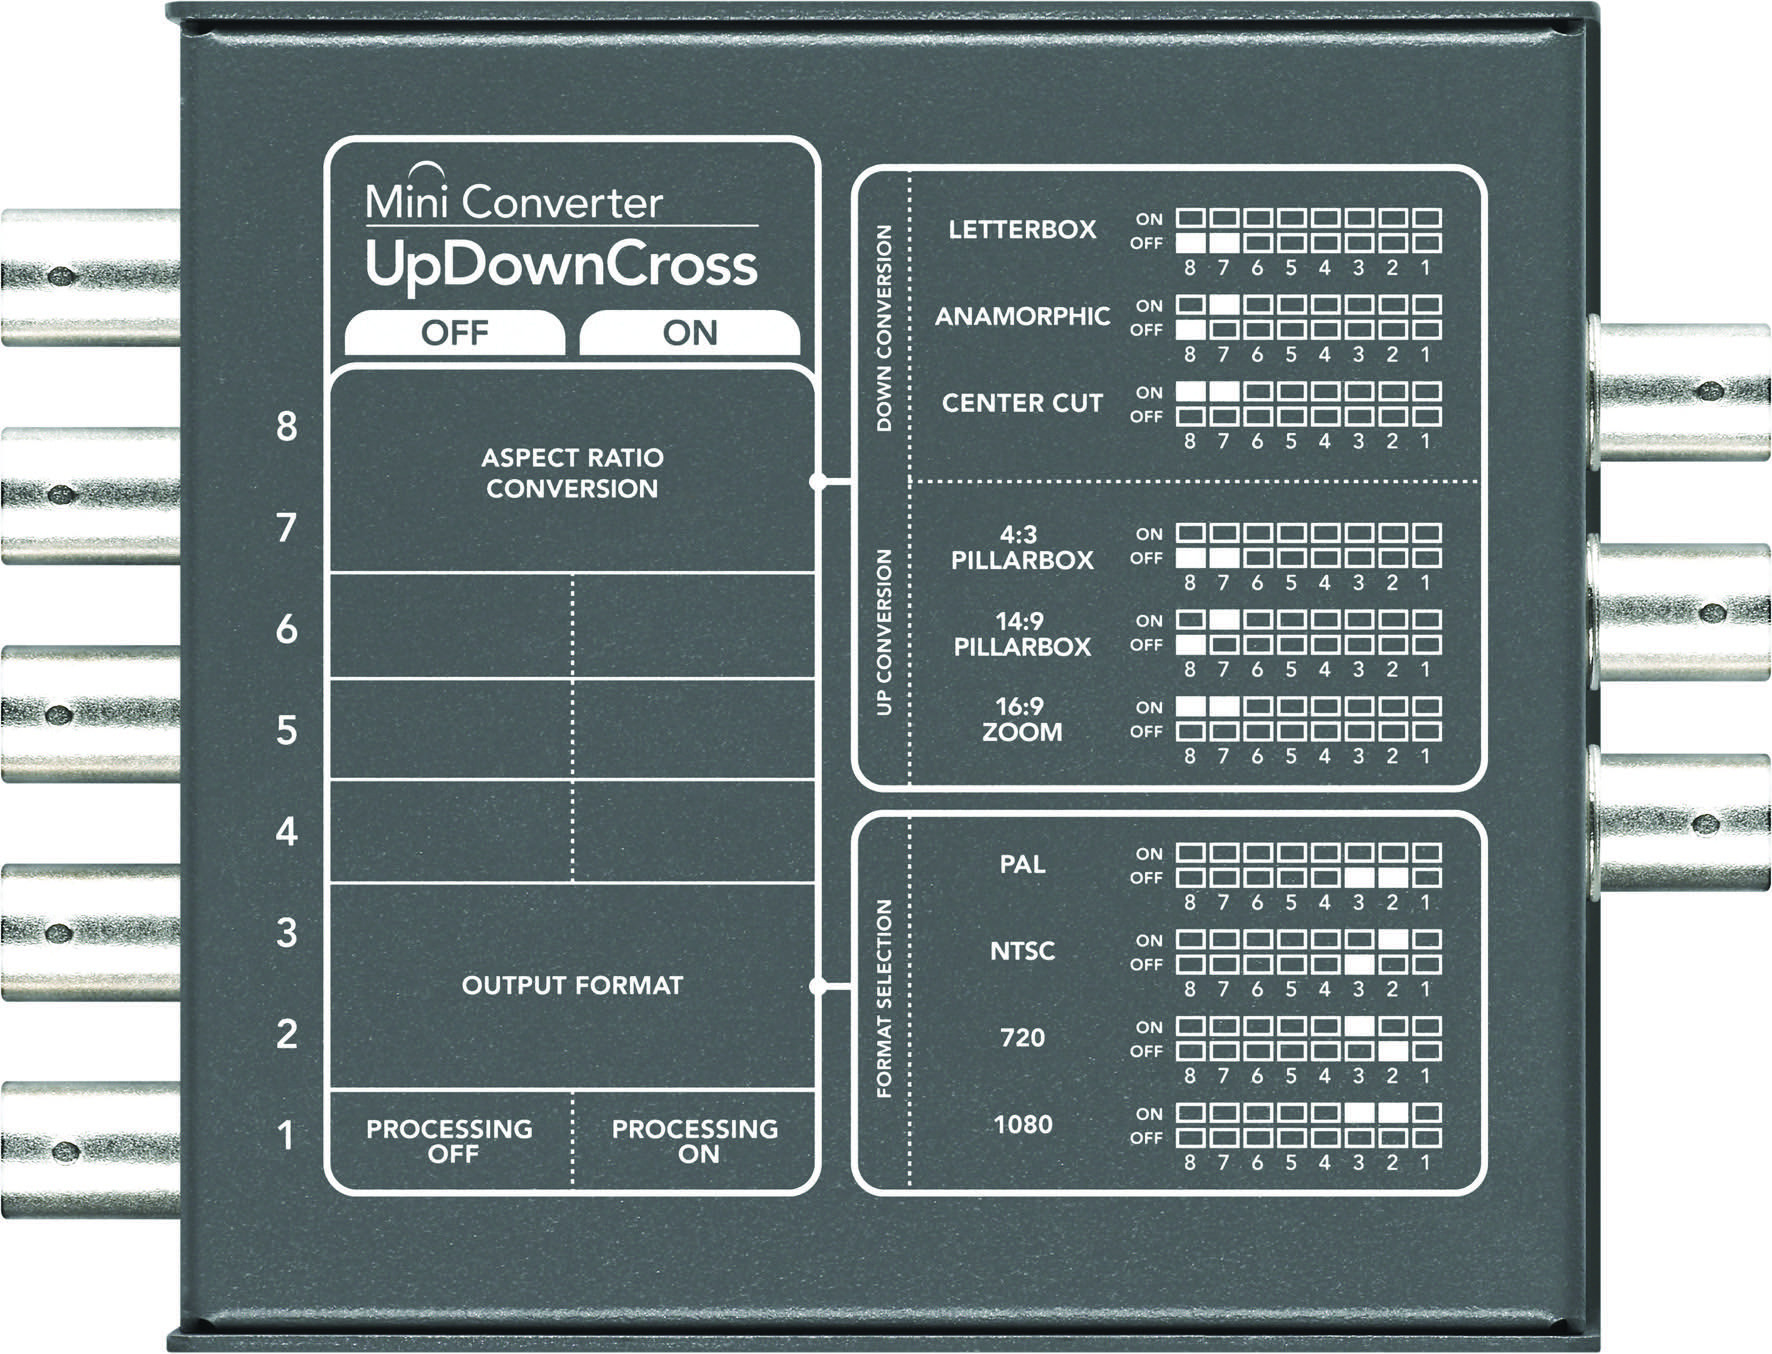 Blackmagic's UpDownCross Mini Converter Now $295 2